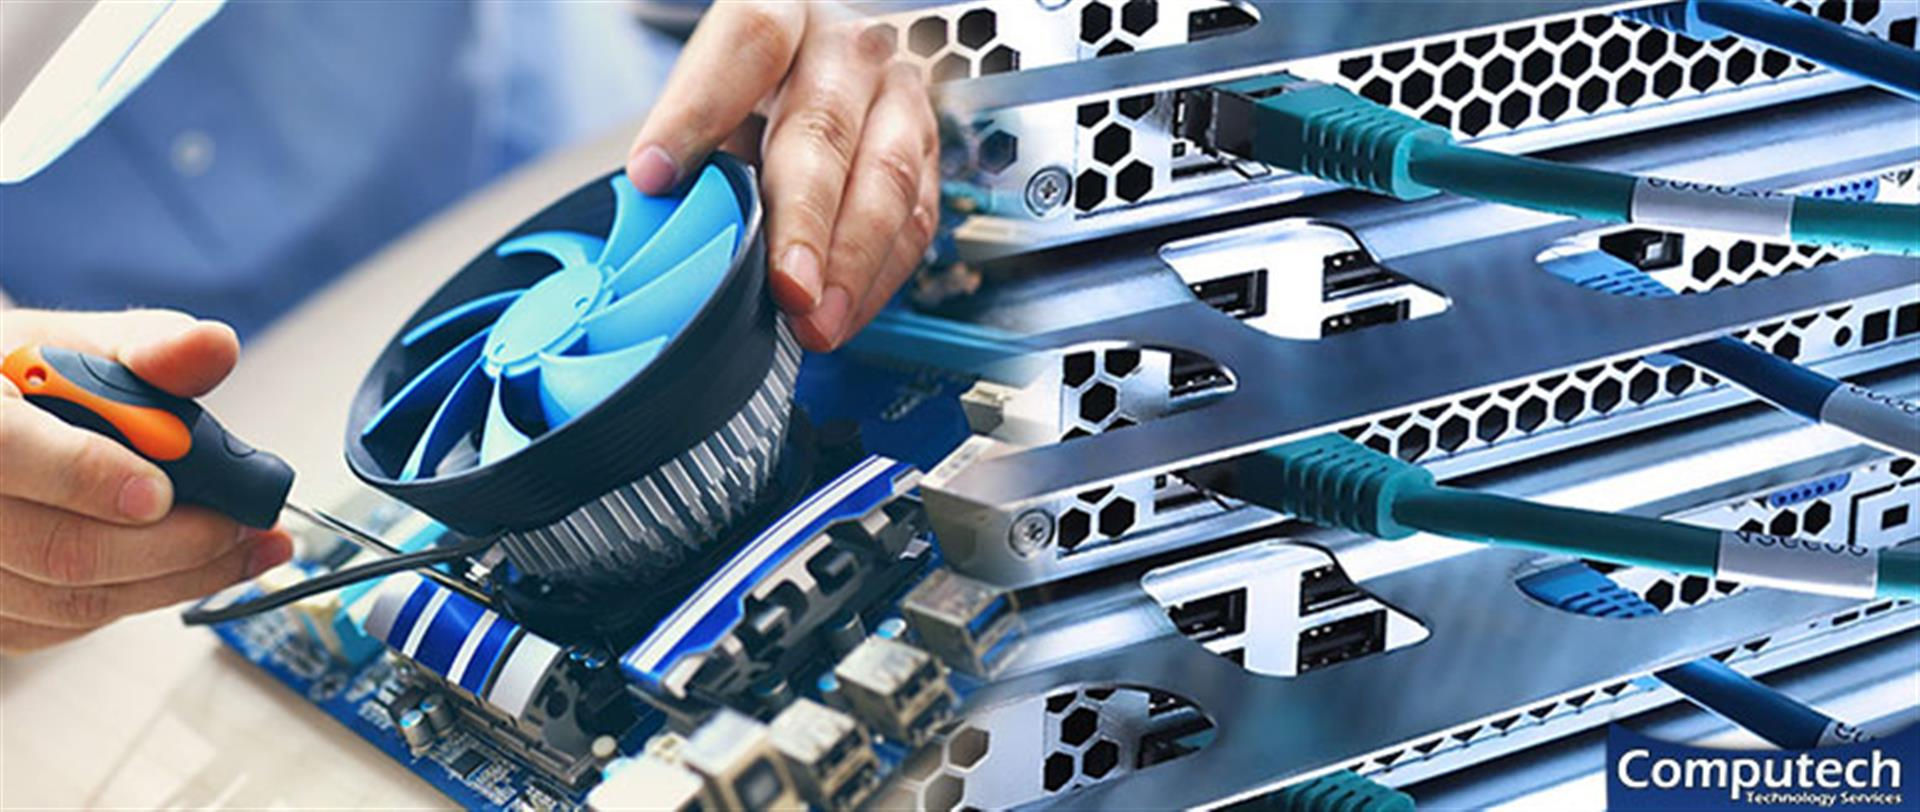 Lexington Virginia Onsite Computer & Printer Repair, Networking, Voice & Data Cabling Contractors